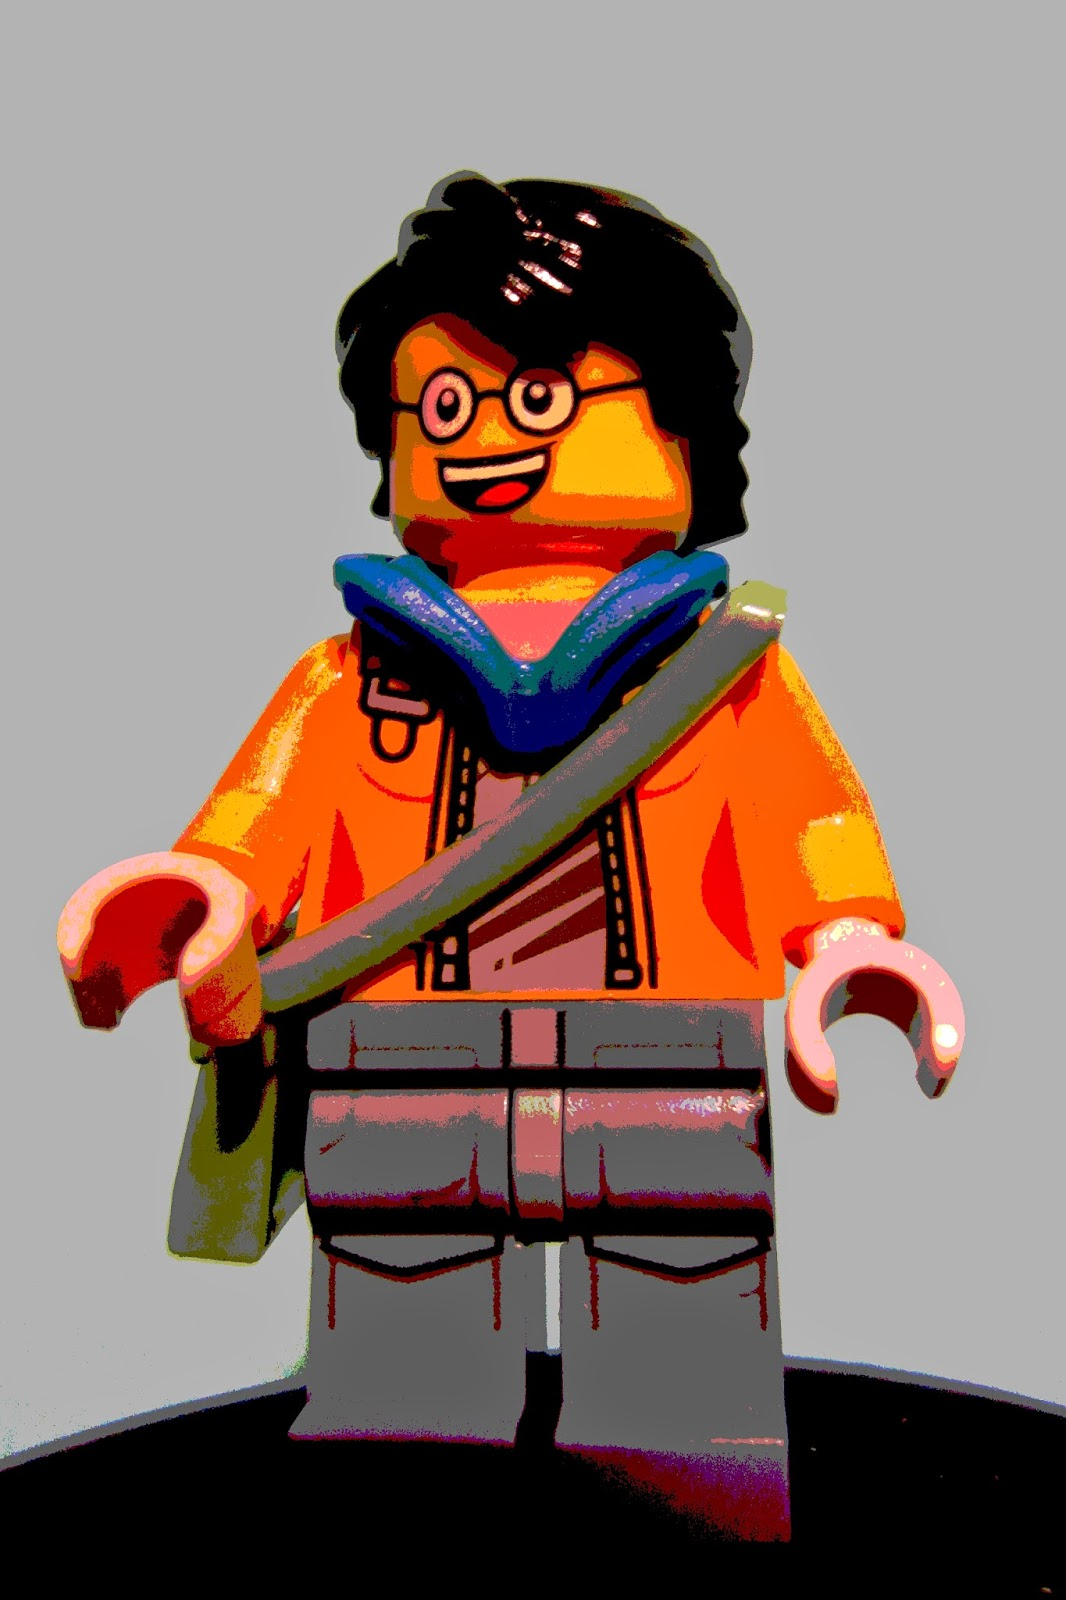 photo of LEGO minifig with stylized graphics